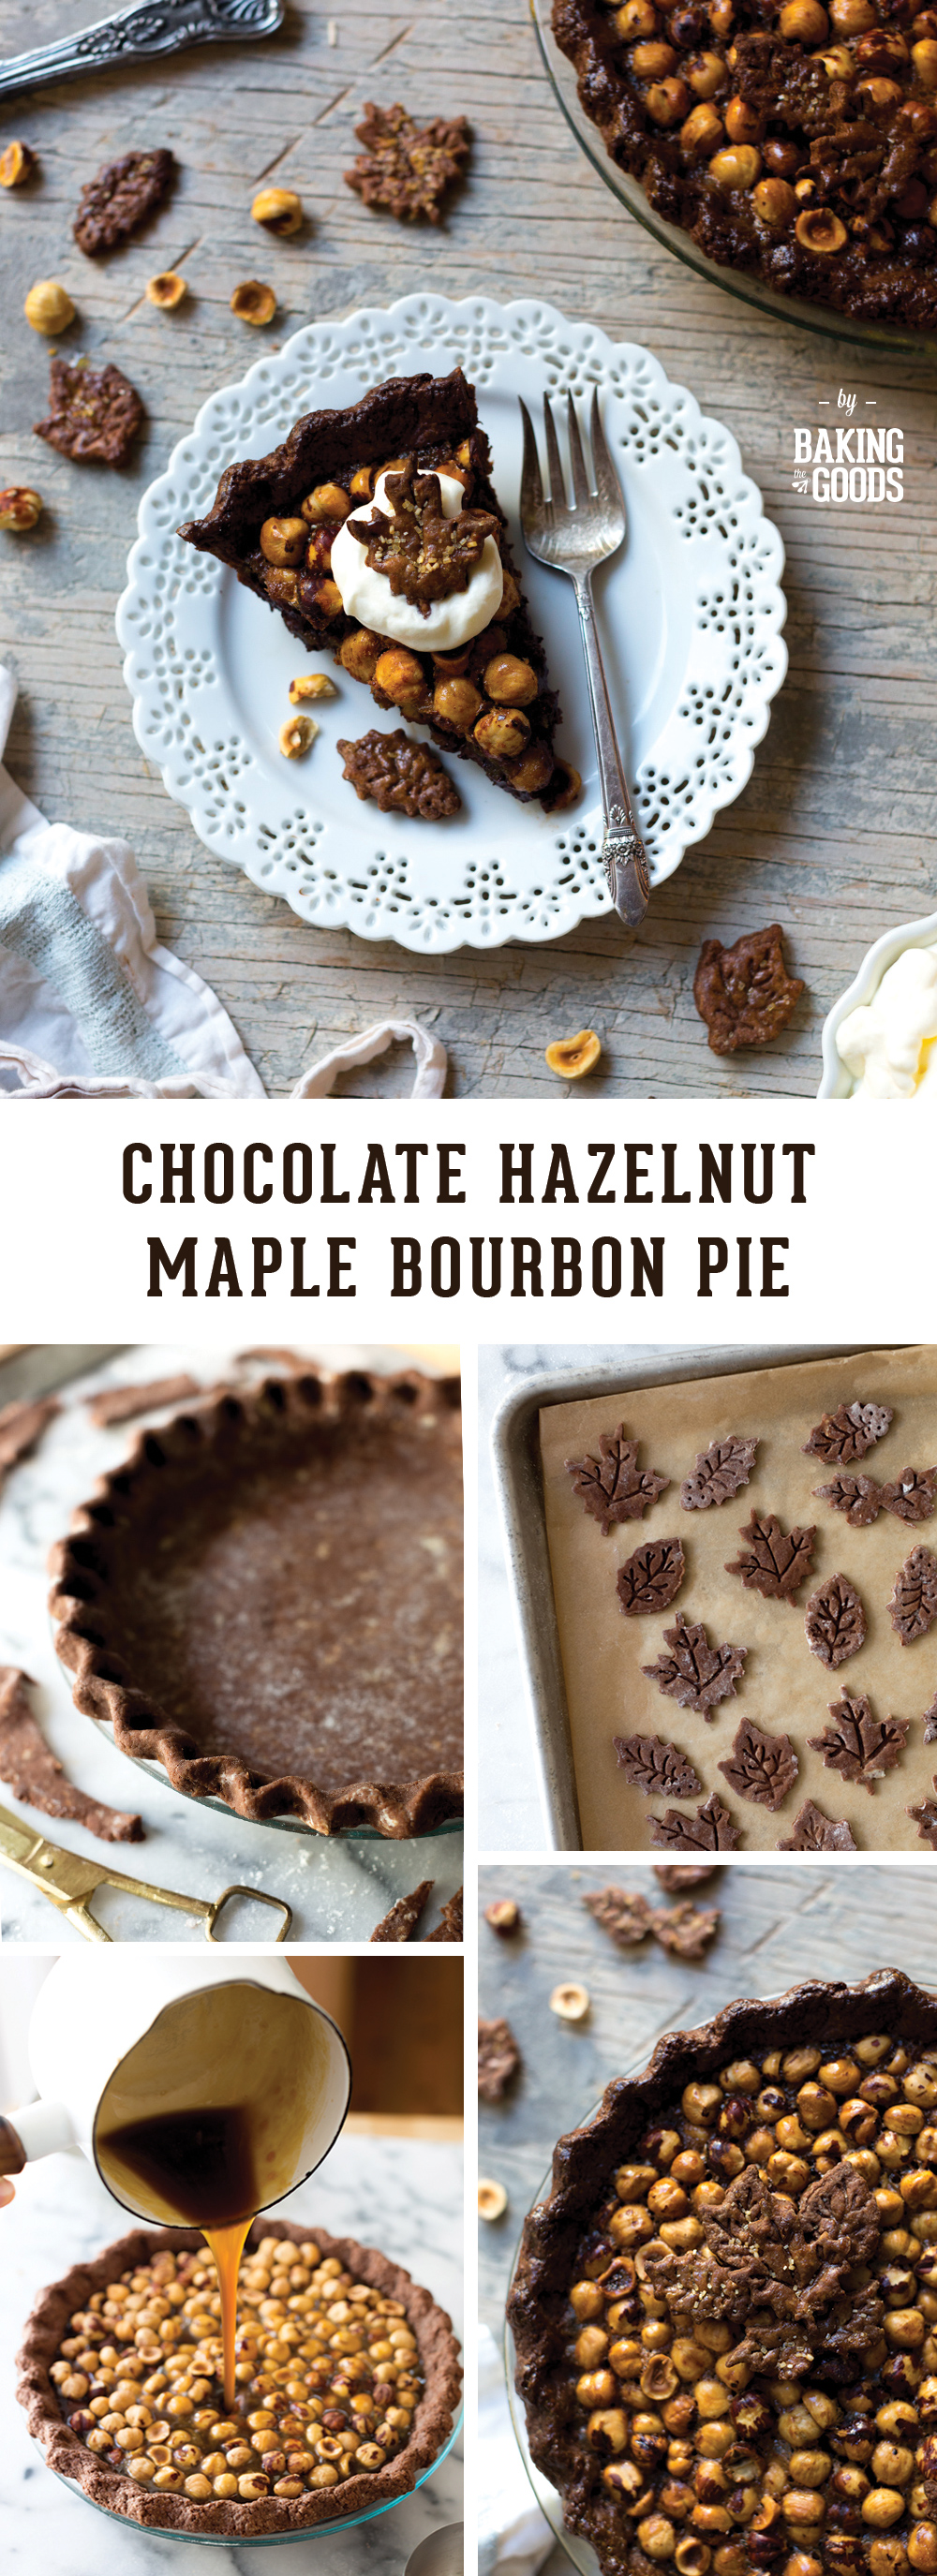 Chocolate Hazelnut Maple Bourbon Pie by Baking The Goods